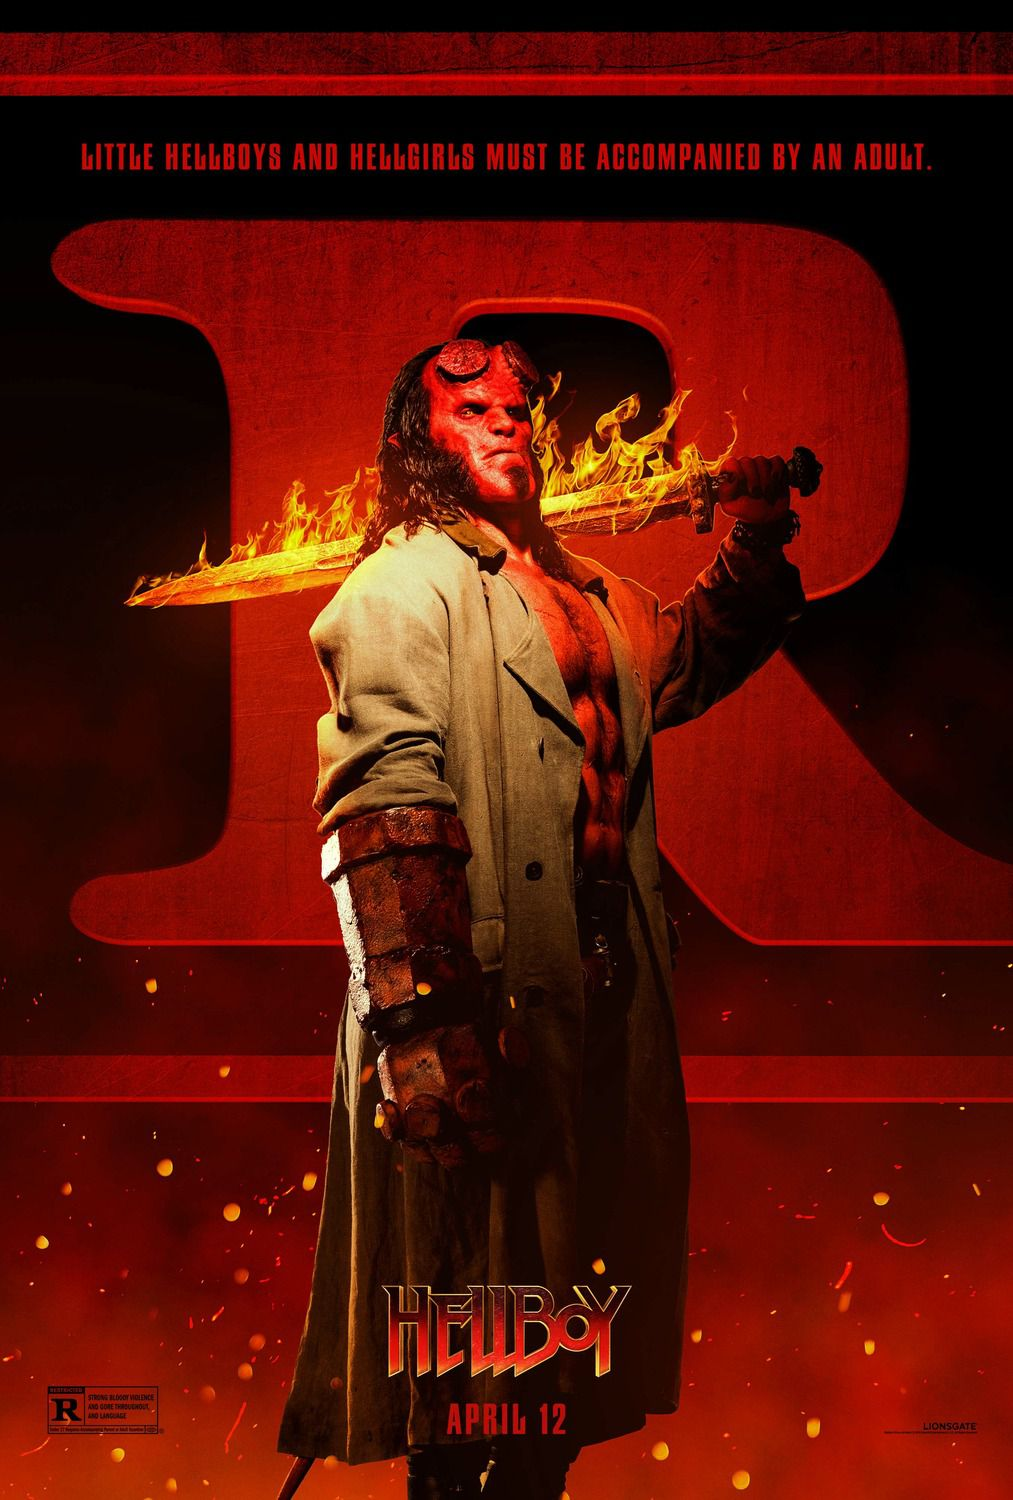 Hellboy 2019 Little hellboys and hellgirls must be accompanied by an adult